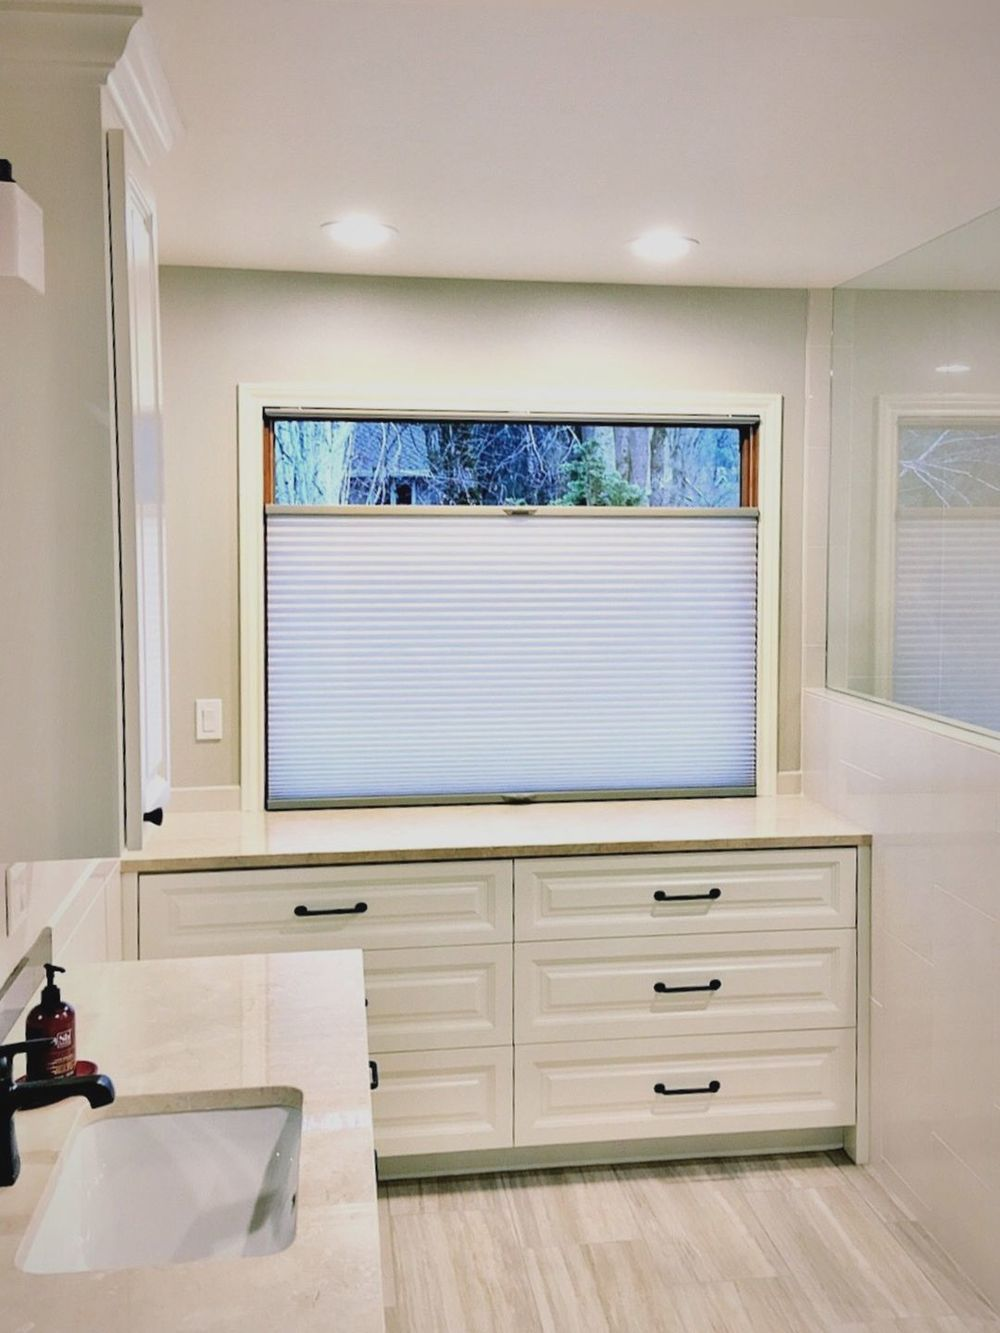 Primary bathroom featuring a single sink counter and cabinetry with a counter, along with a glass window featuring a window shade.